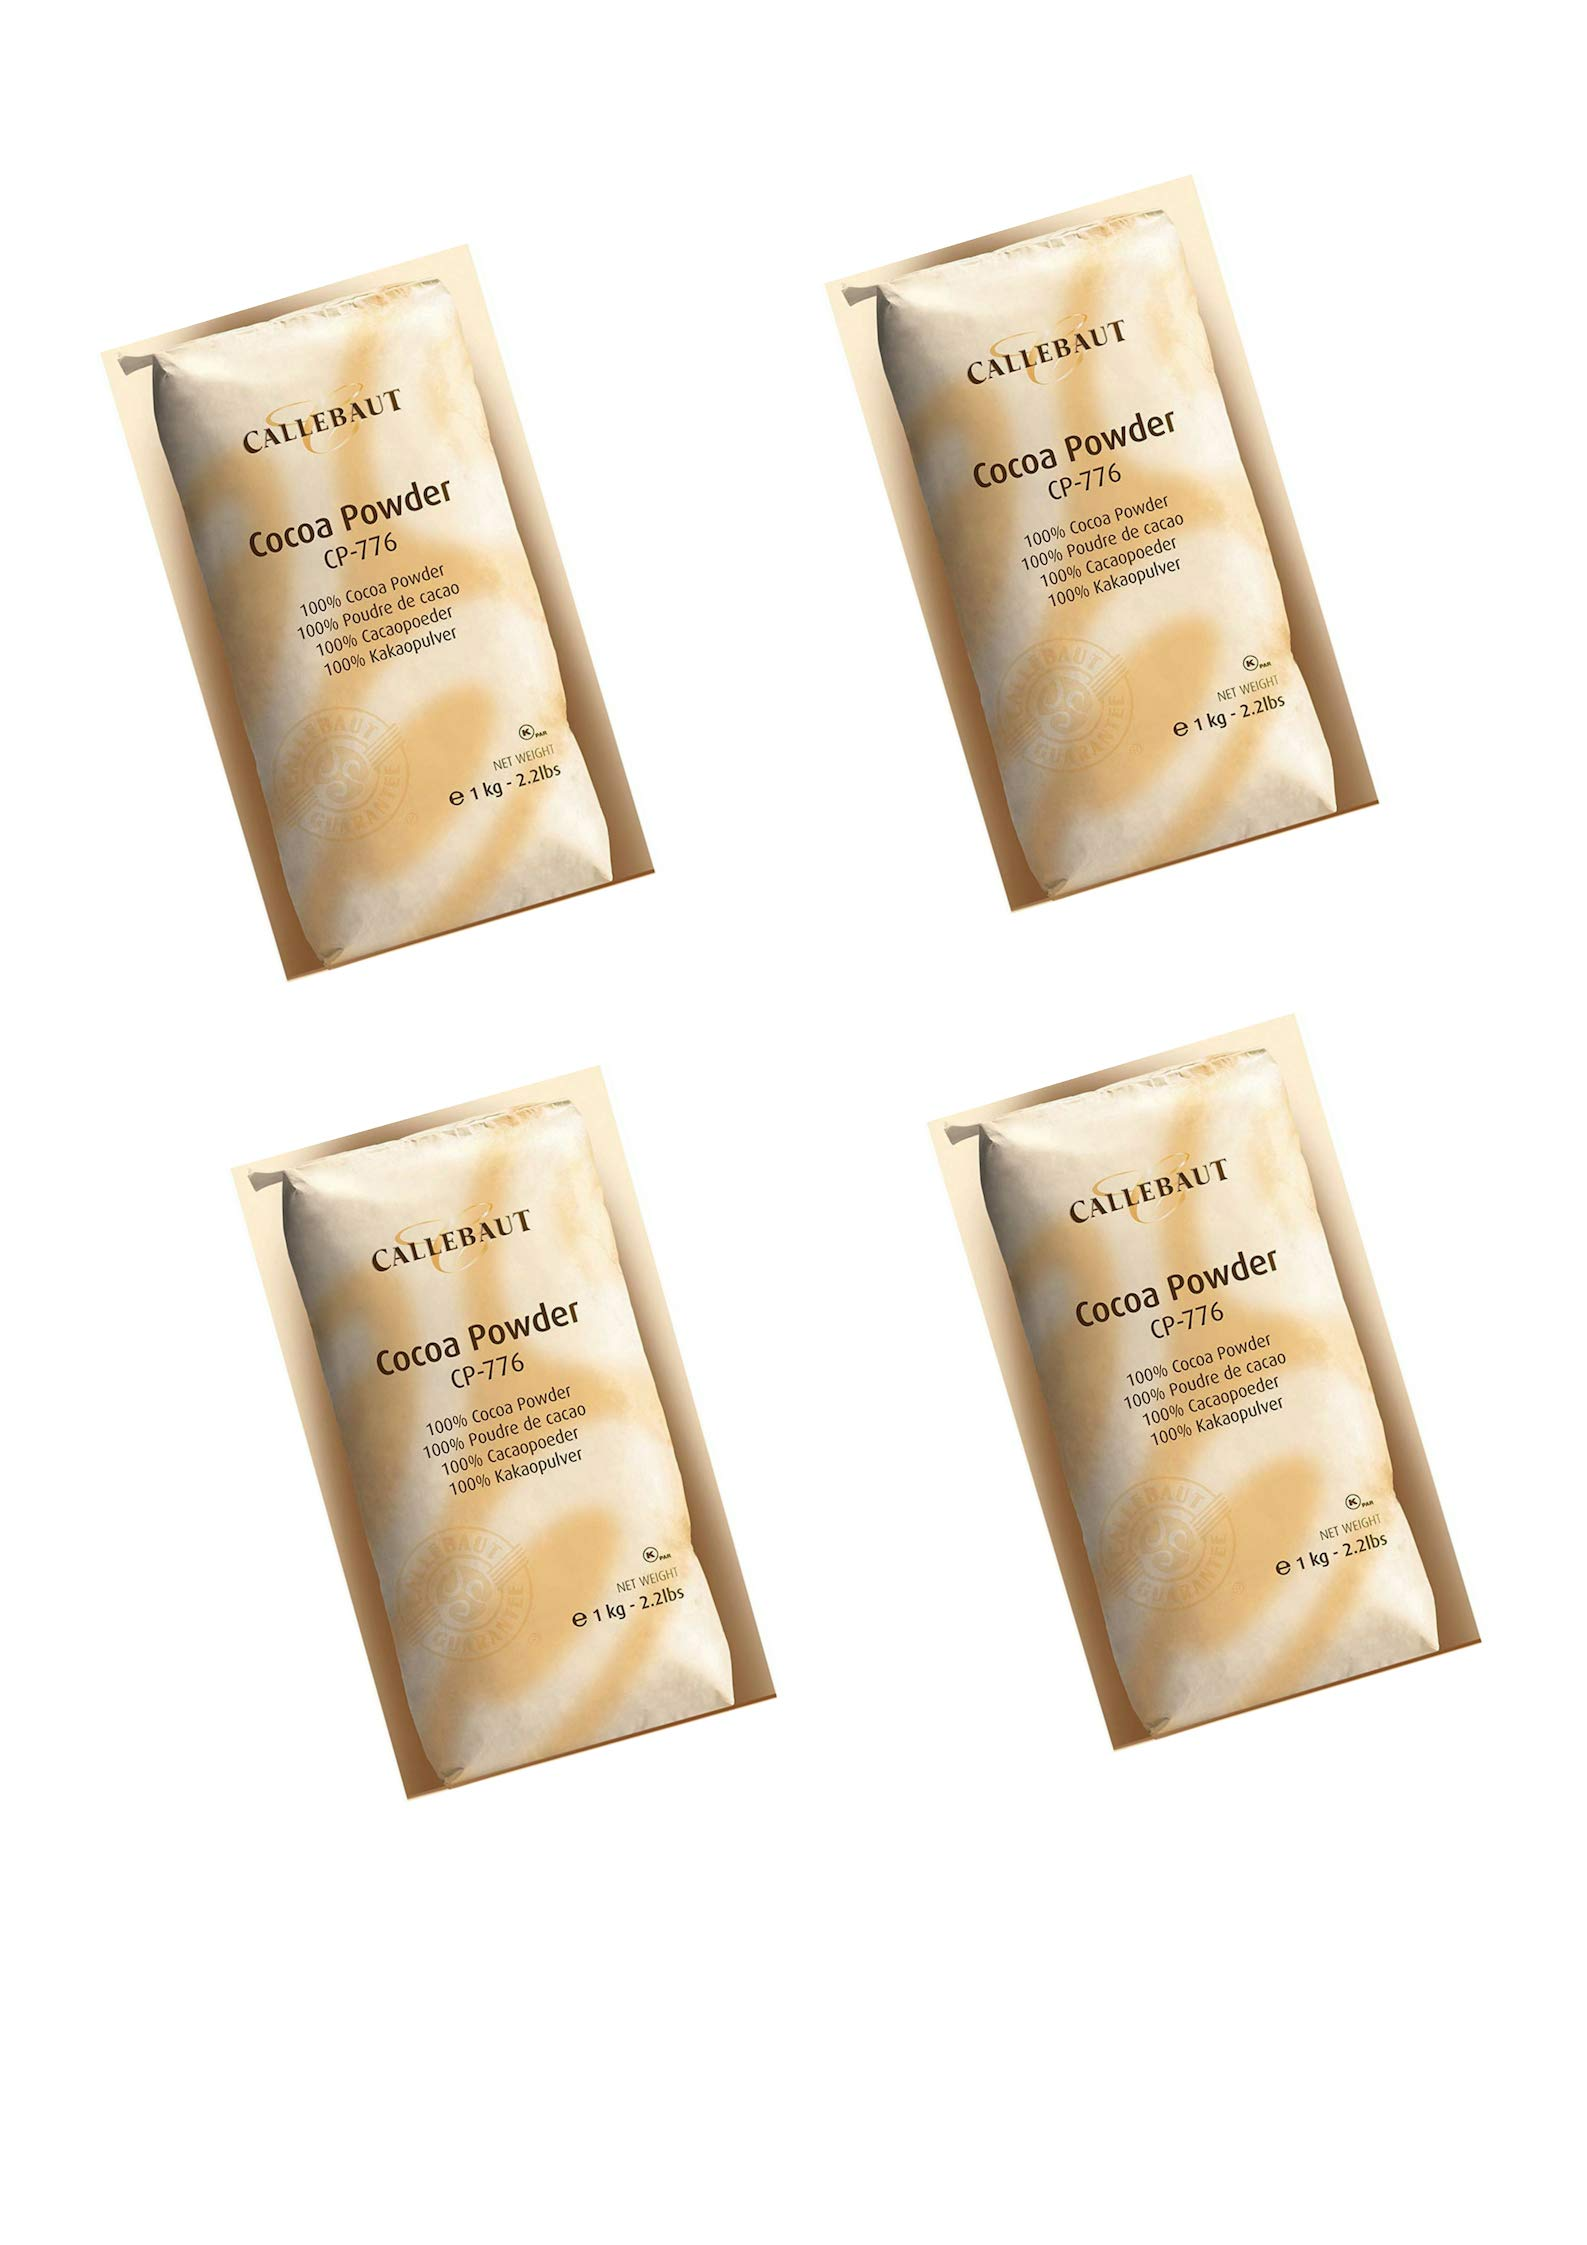 Callebaut Baking Cocoa Powder 2.2lb. bag in Cook's Illustrated (4pack)